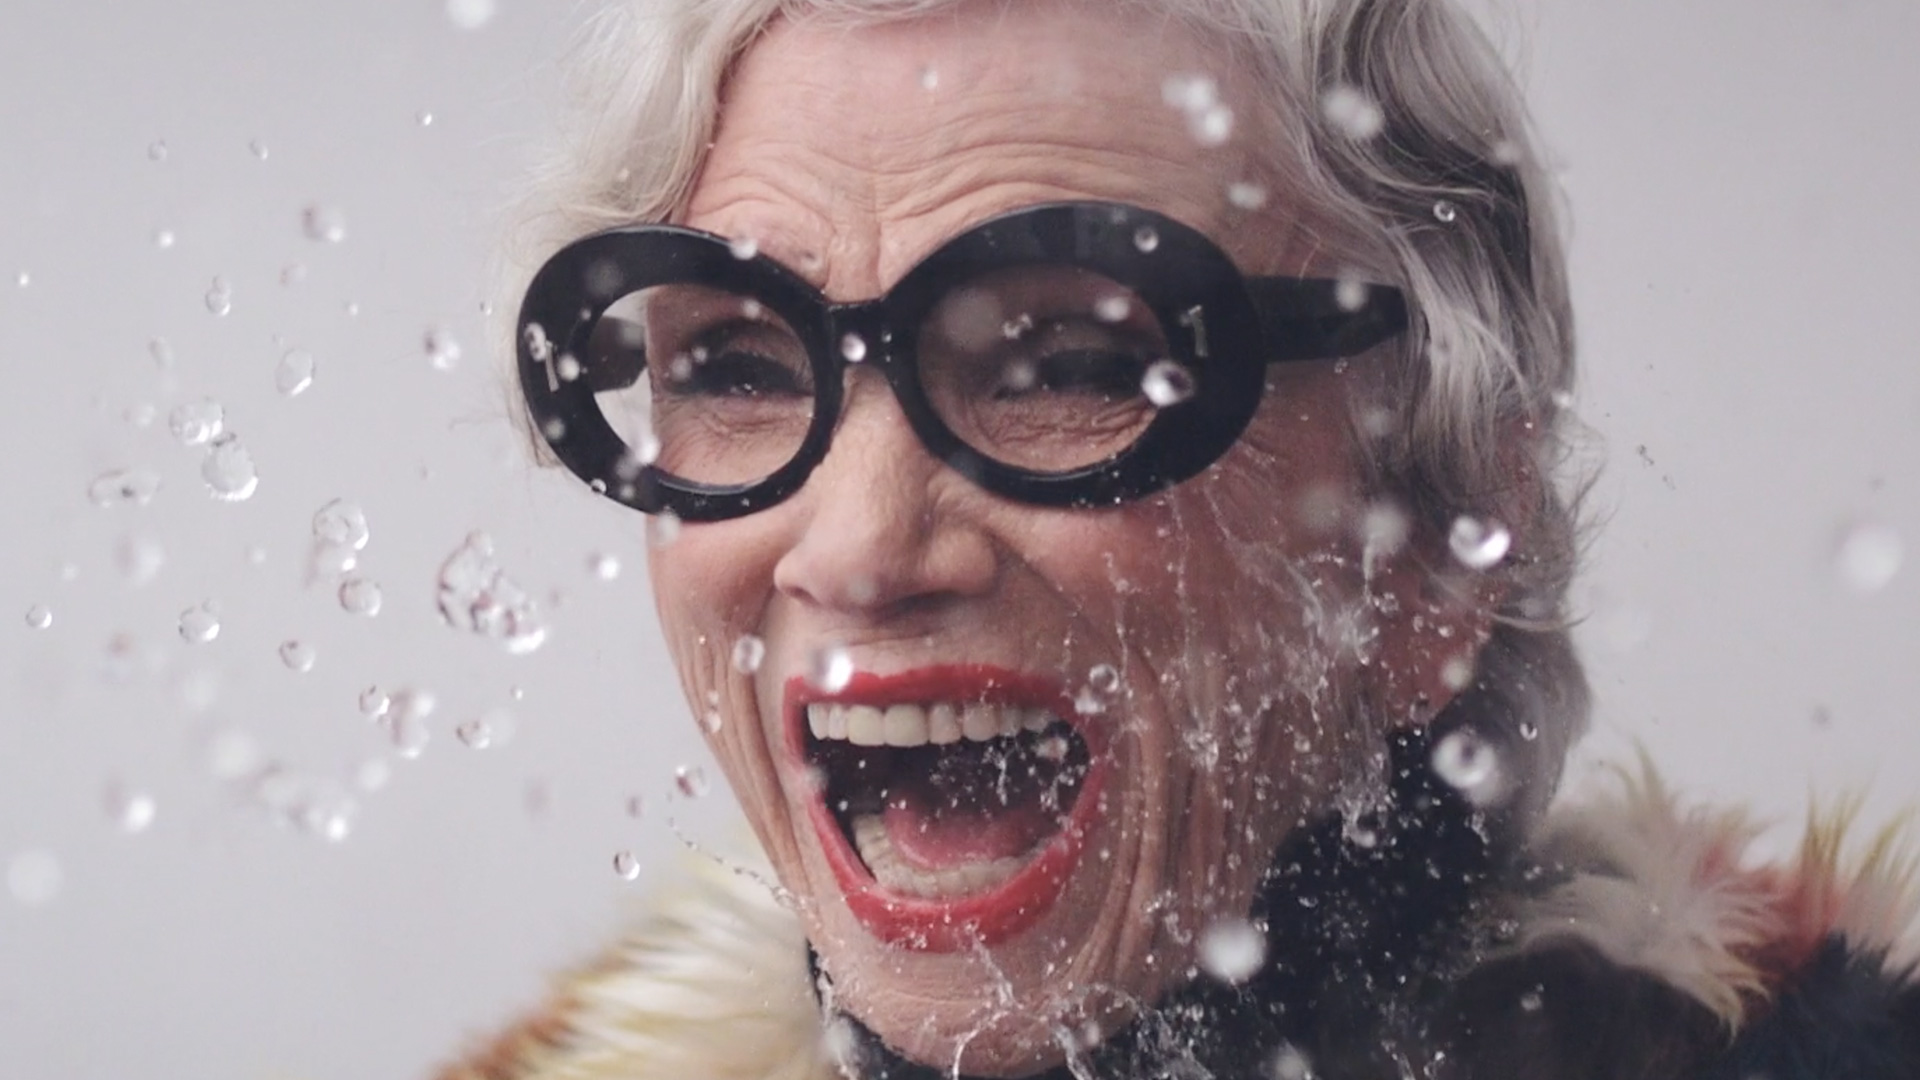 Lady with black glasses smiling with joy